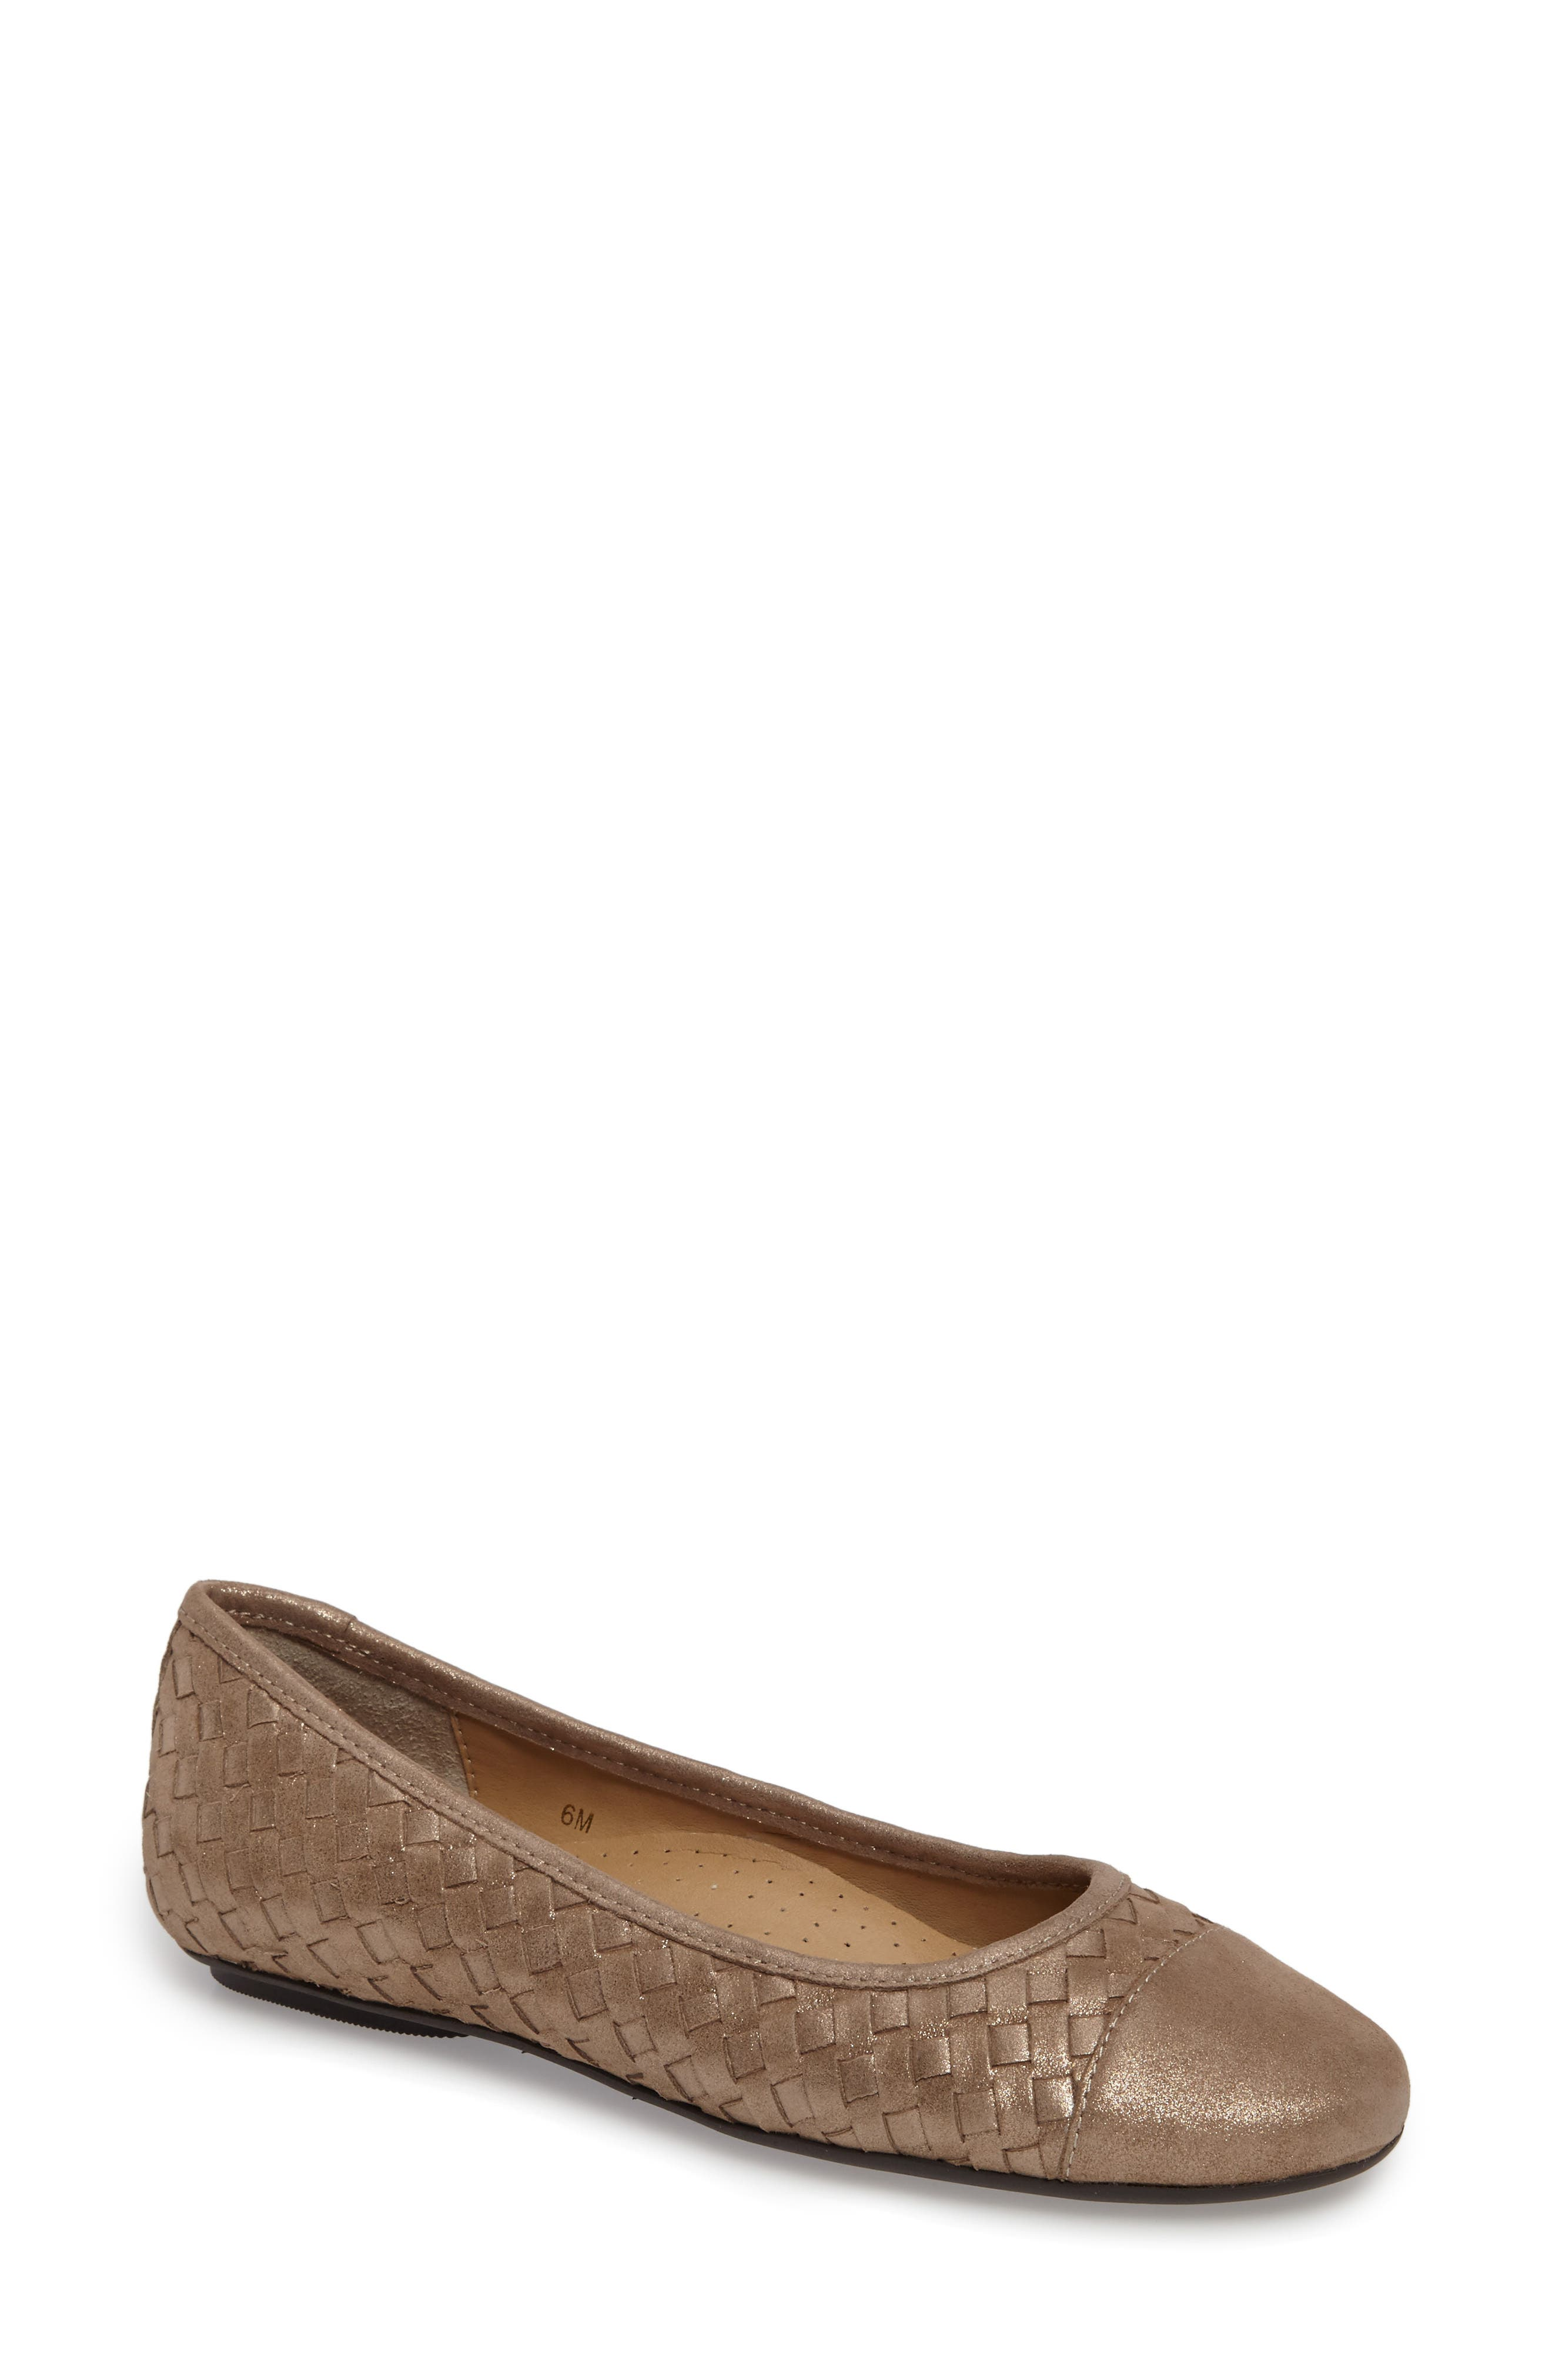 Alternate Image 1 Selected - VANELi Shera Woven Skimmer Flat (Women)